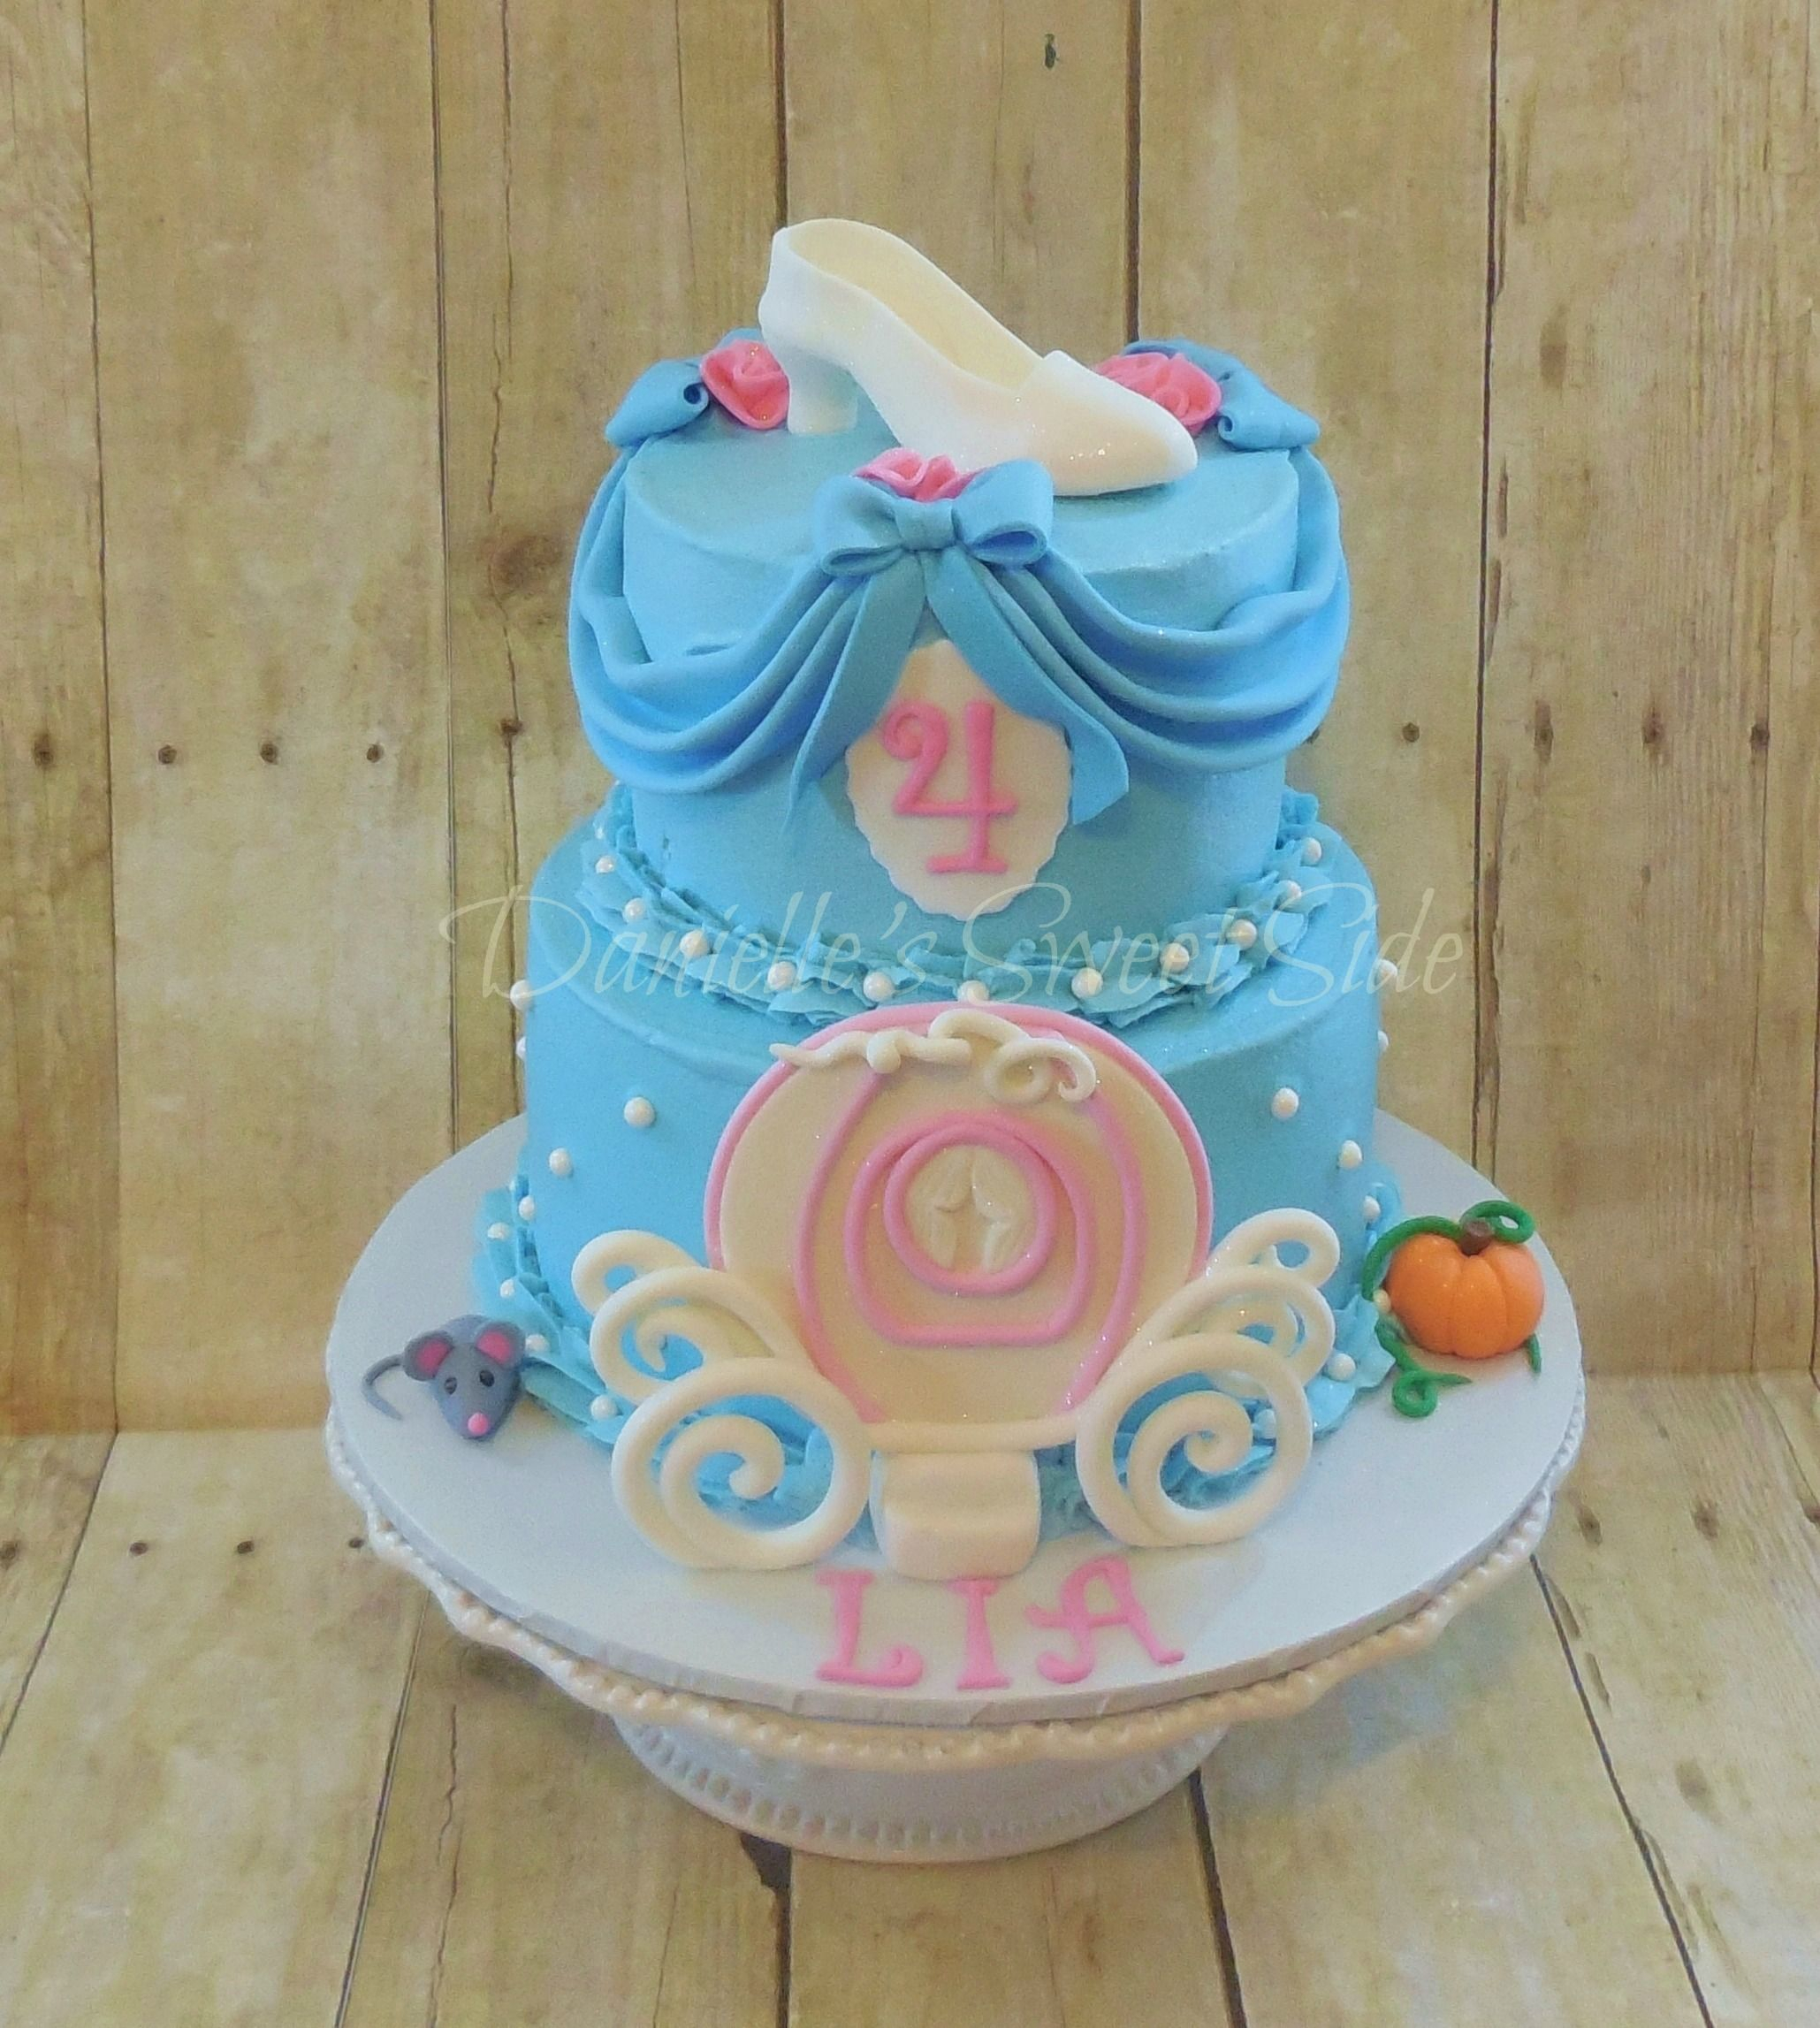 Cinderella Birthday Cakes Cinderella Inspired Birthday Cake Buttercream Icing With Fondant